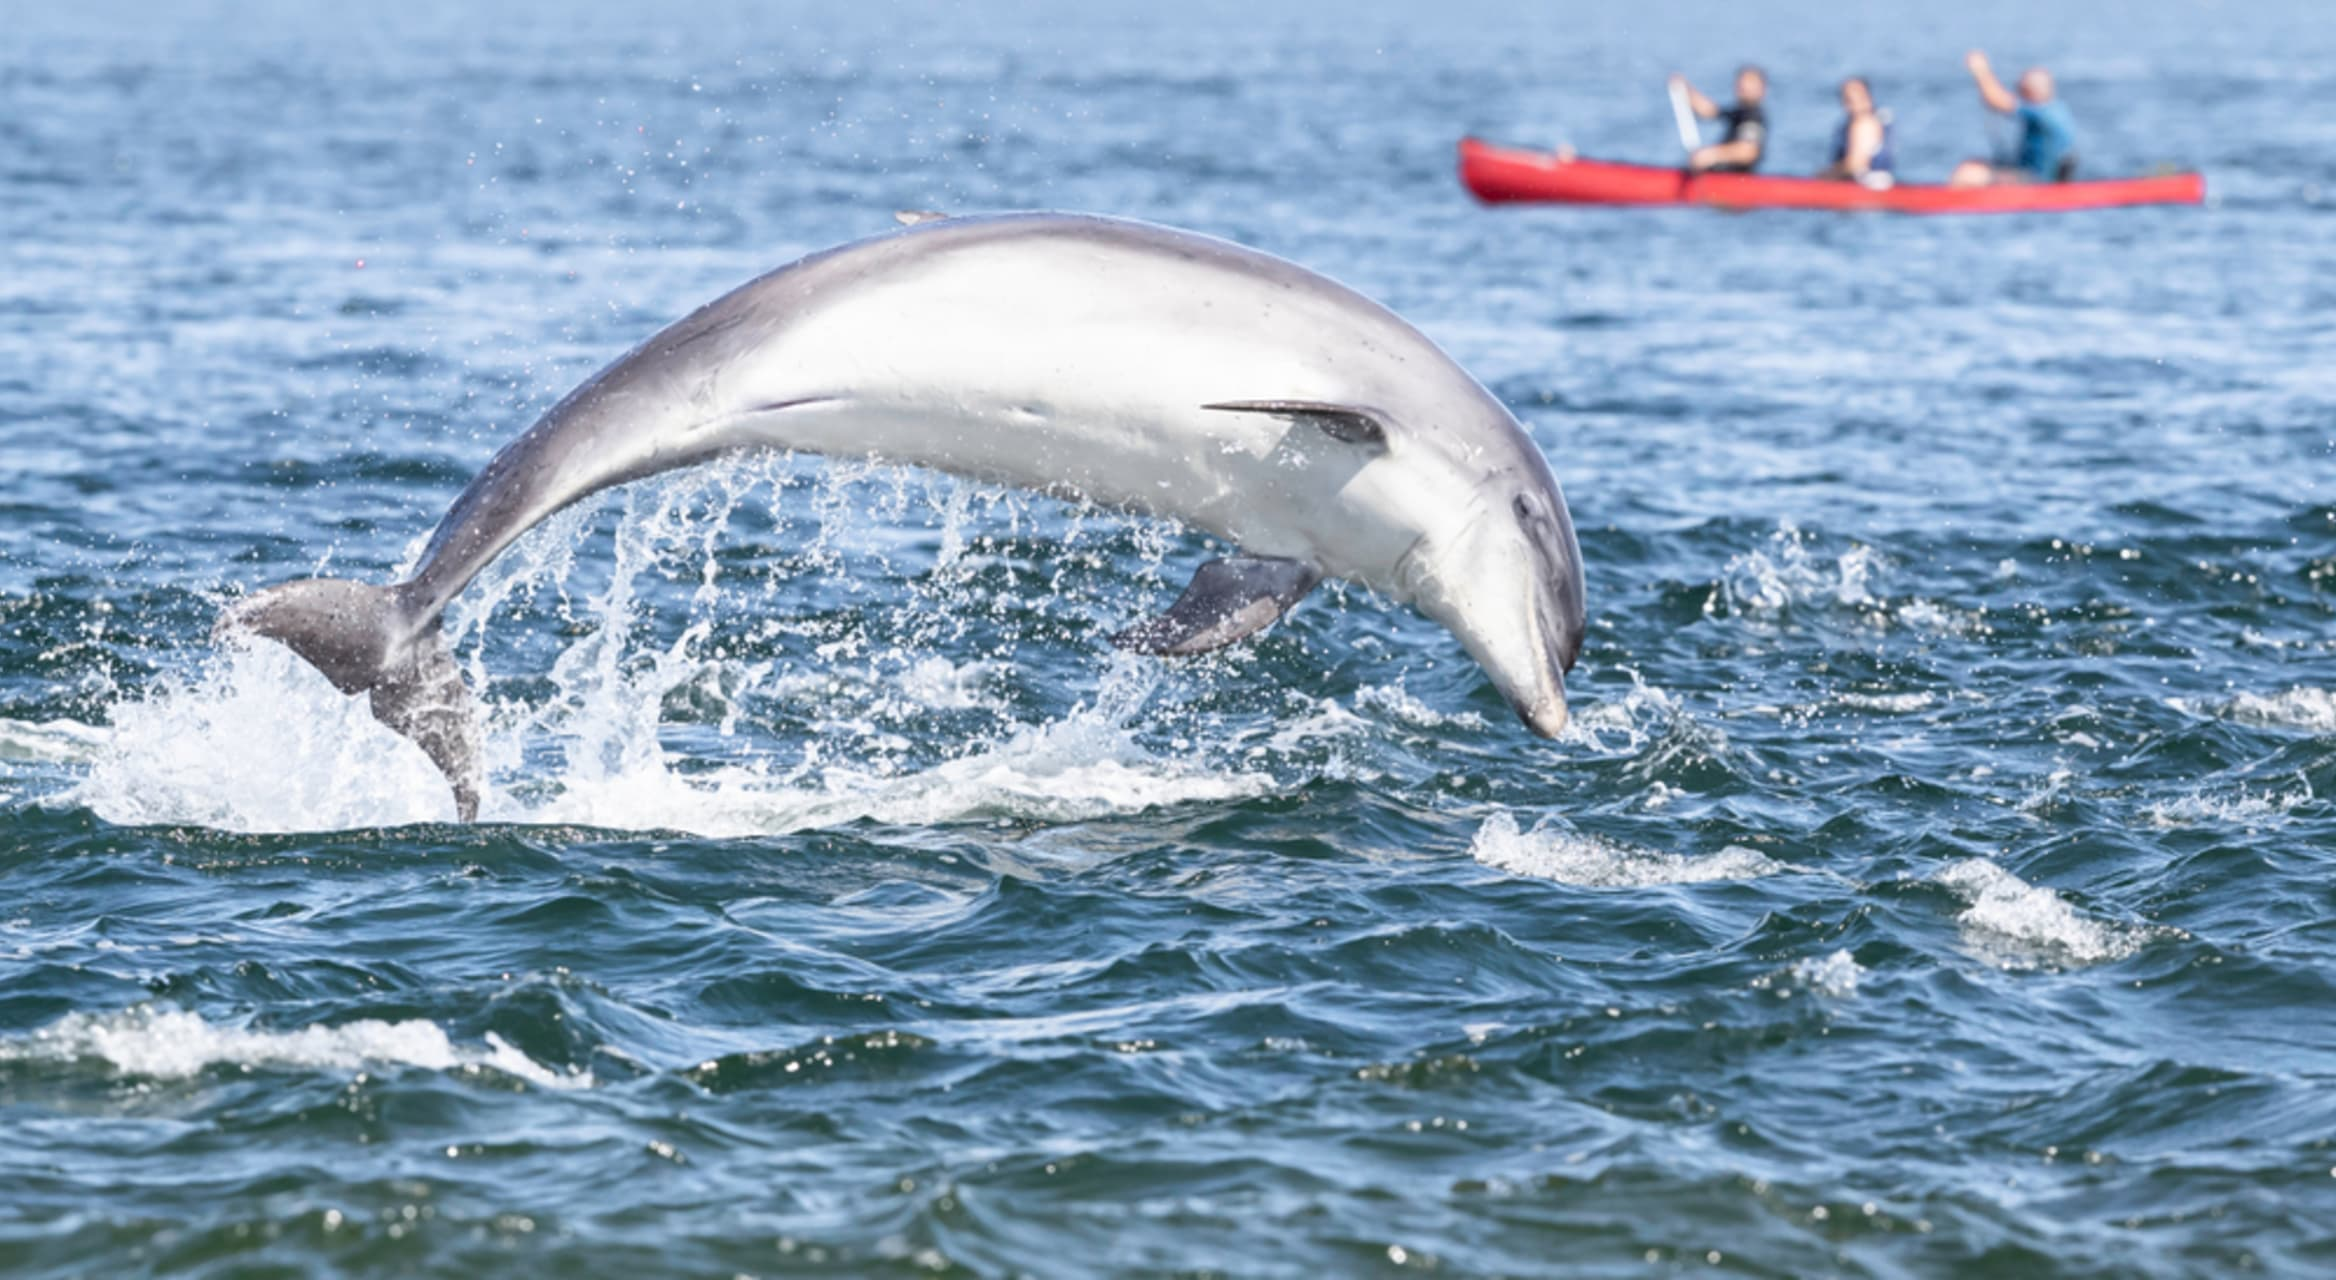 New South Wales - Kayaking with Wild Dolphins in Australia